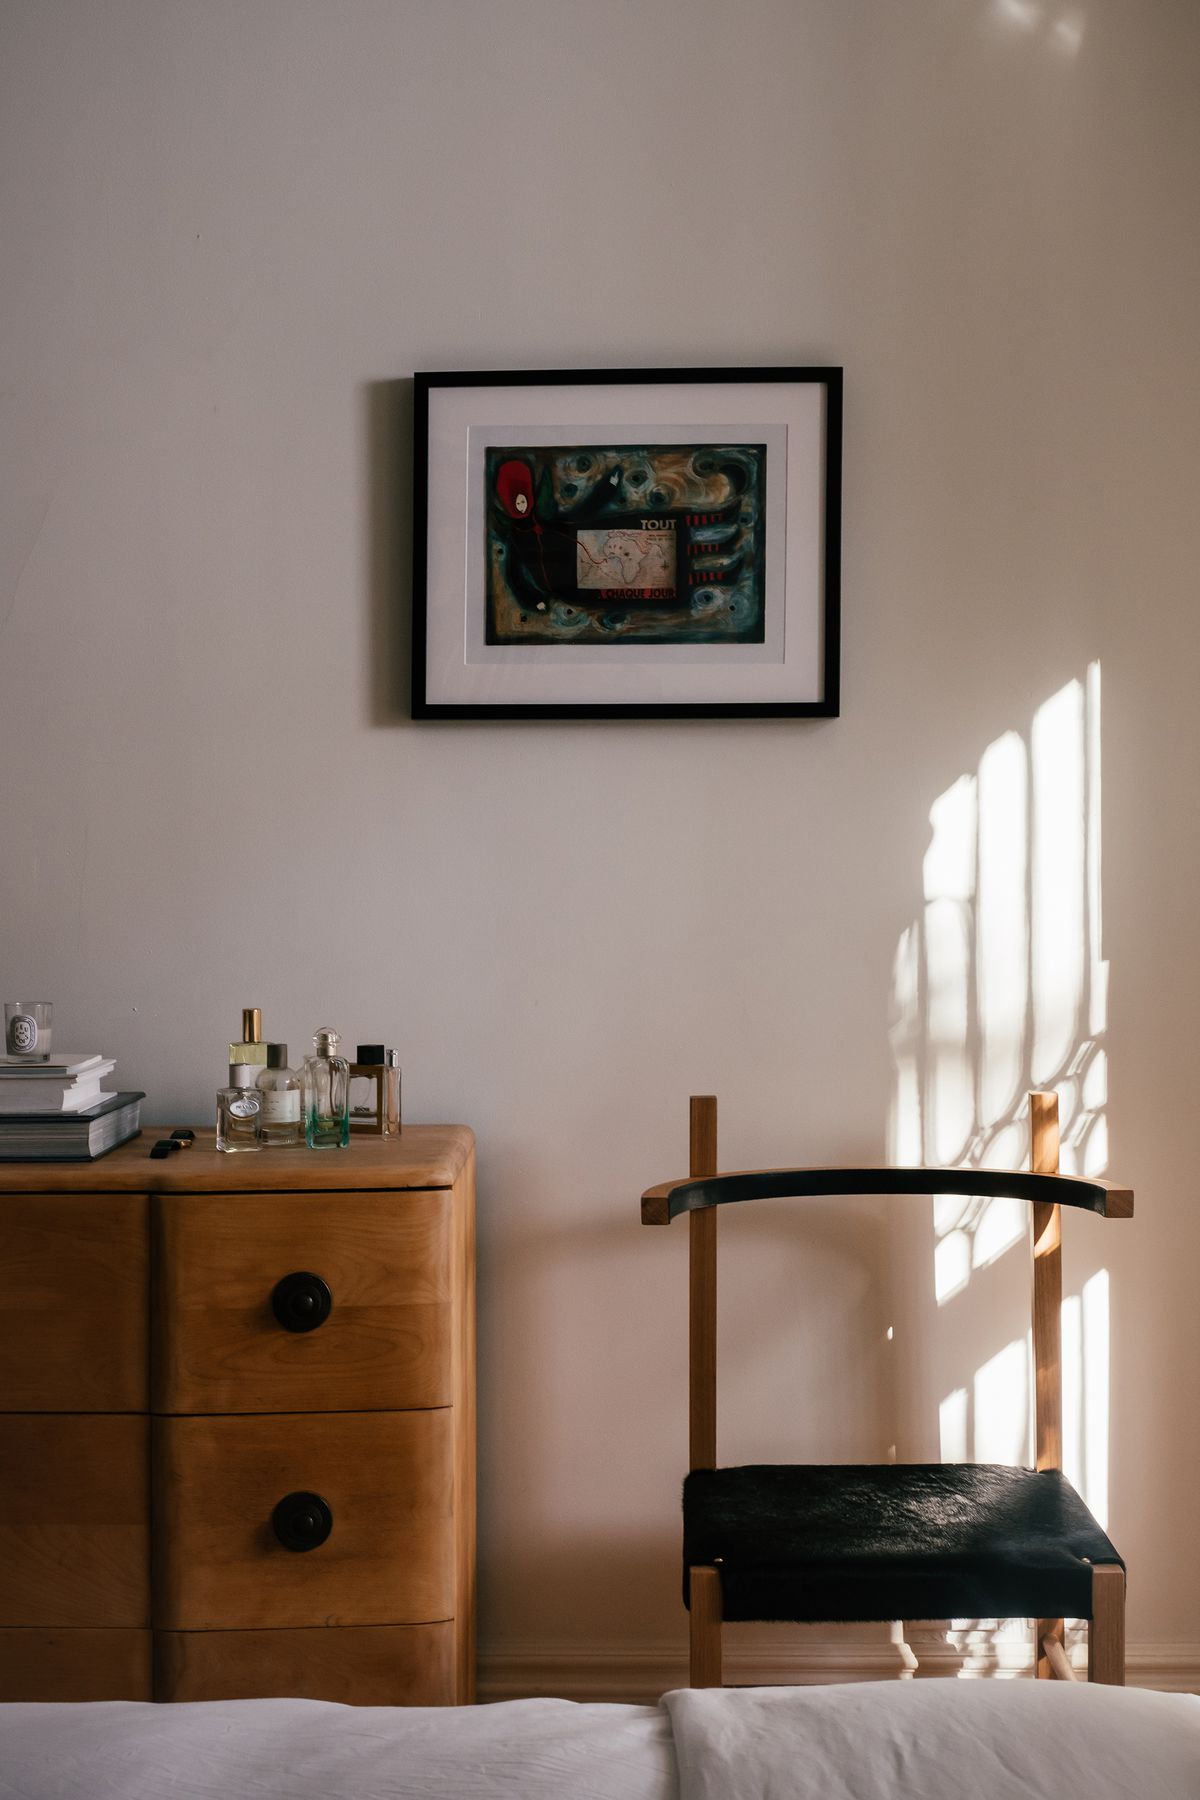 A modern chair with a curved back sits next to a vintage chest of drawers.